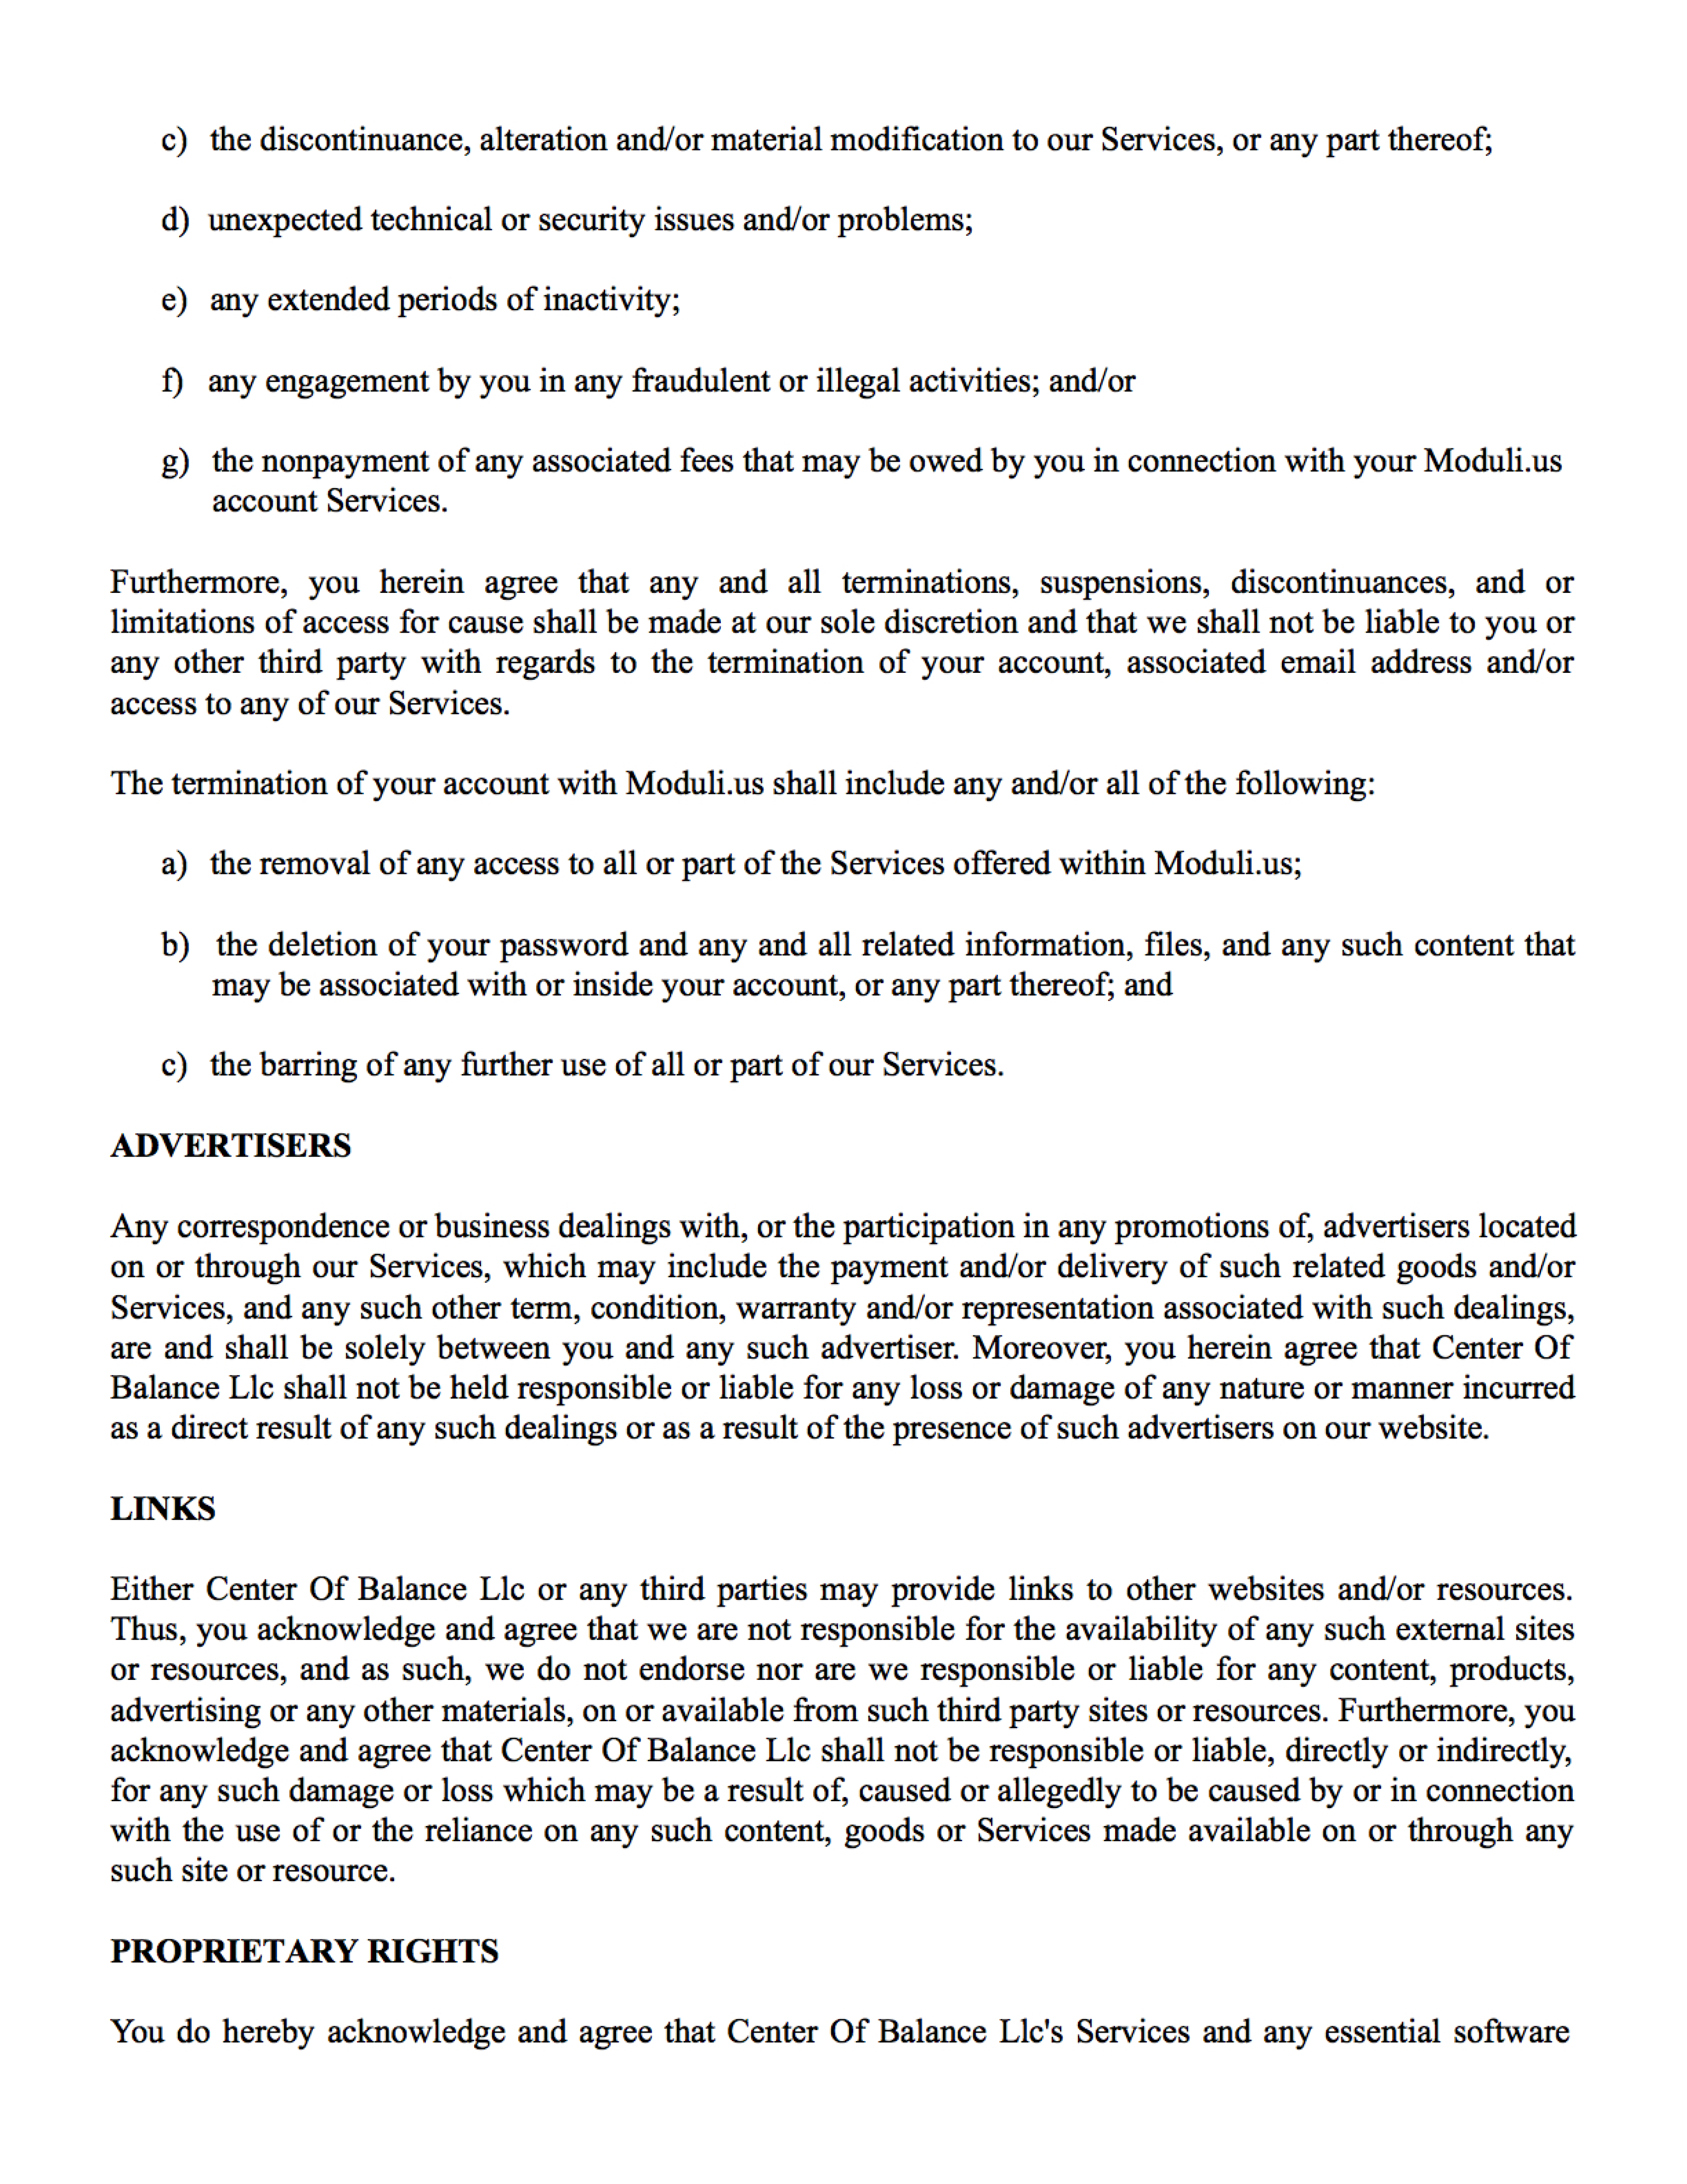 terms-and-conditions-b-page-08.png